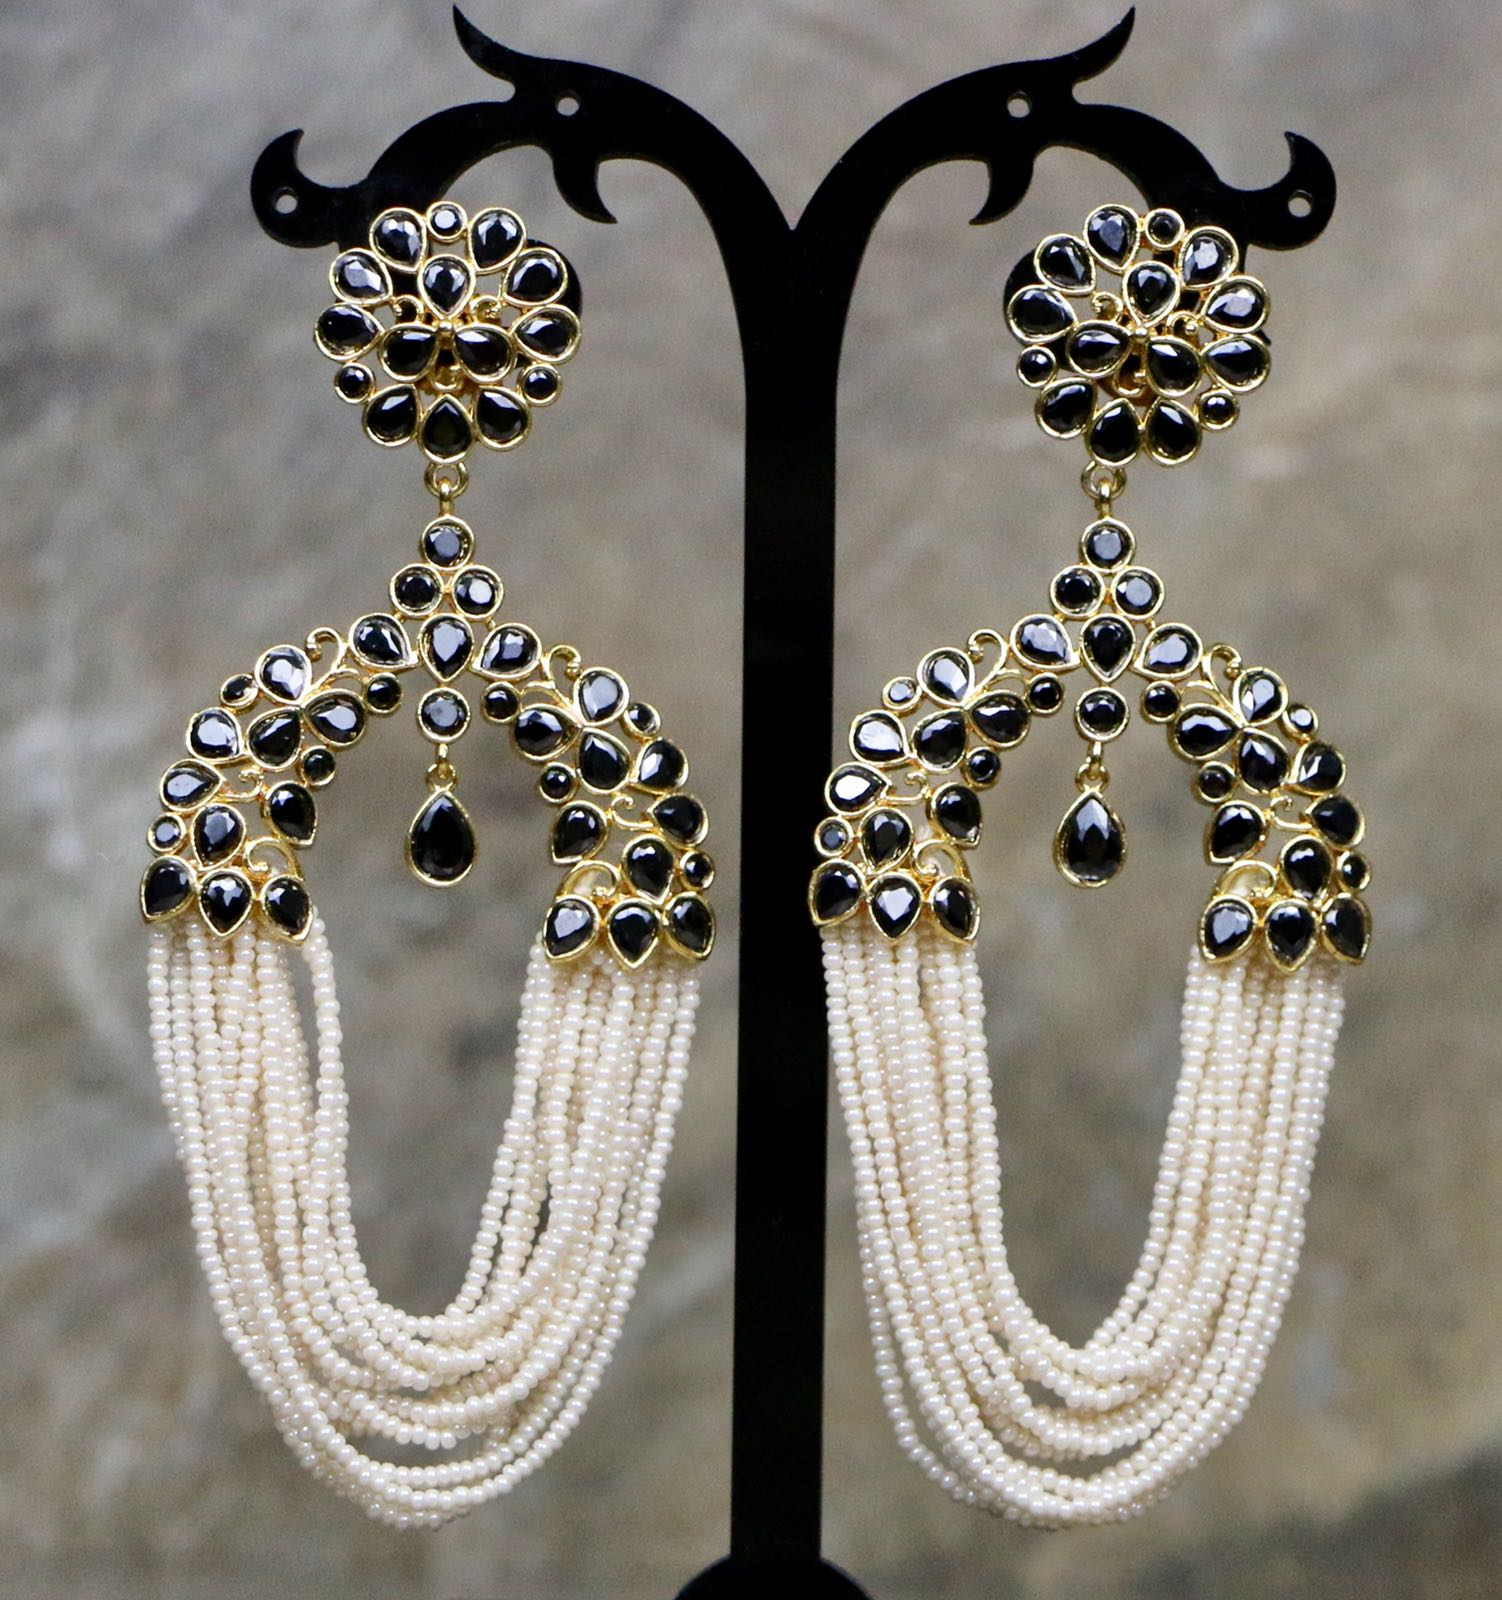 Gold Plated Black Stone Earrings with White Pearls